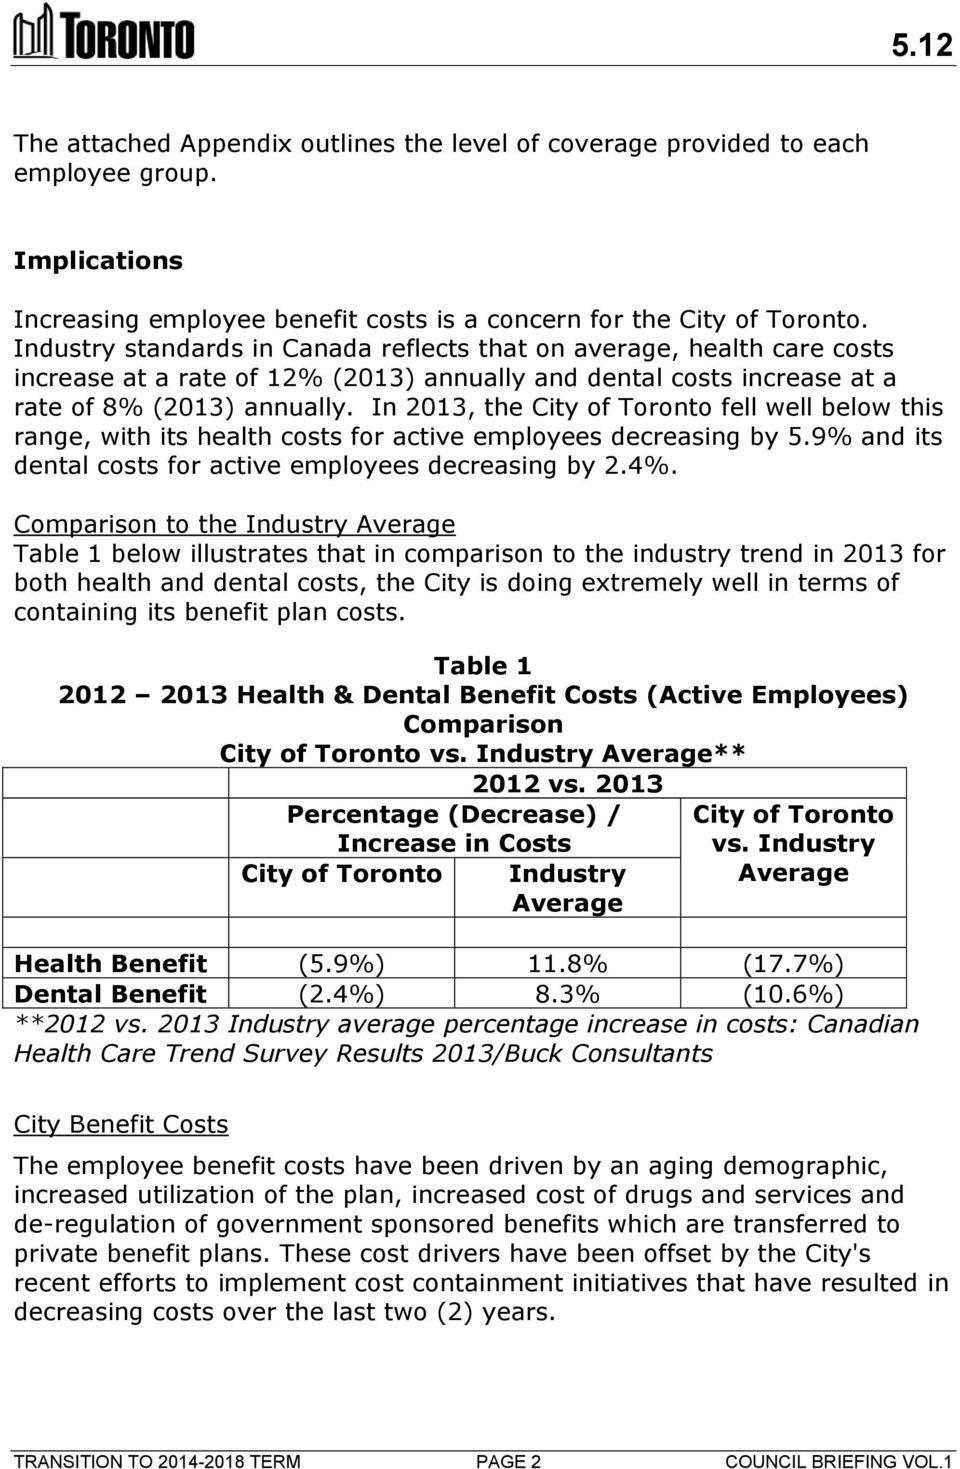 In 2013, the City of Toronto fell well below this range, with its health costs for active employees decreasing by 5.9% and its dental costs for active employees decreasing by 2.4%.